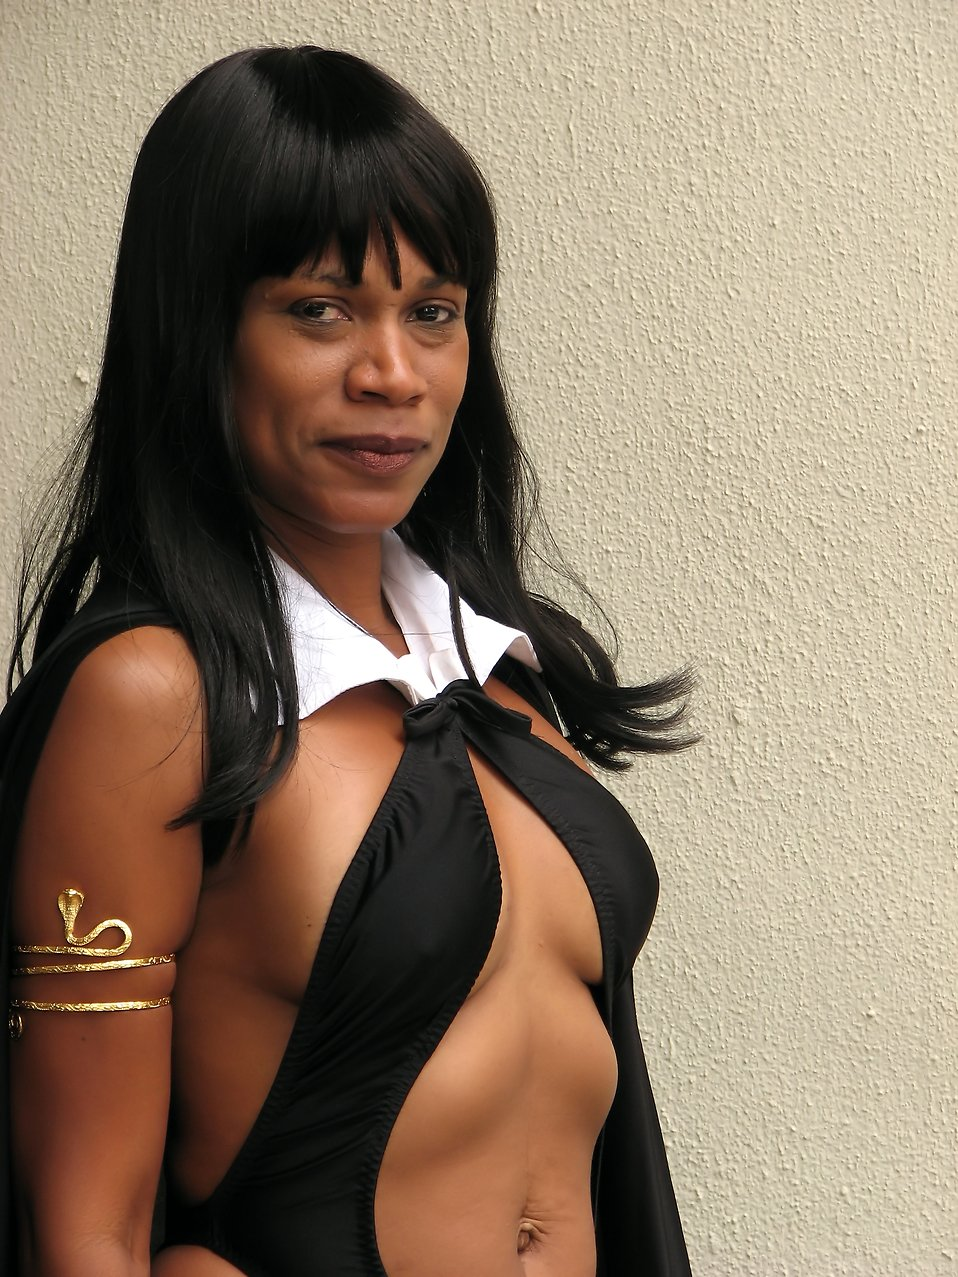 A beautiful African American woman in a vampire costume at Dragoncon 2009 in Atlanta, Georgia : Free Stock Photo